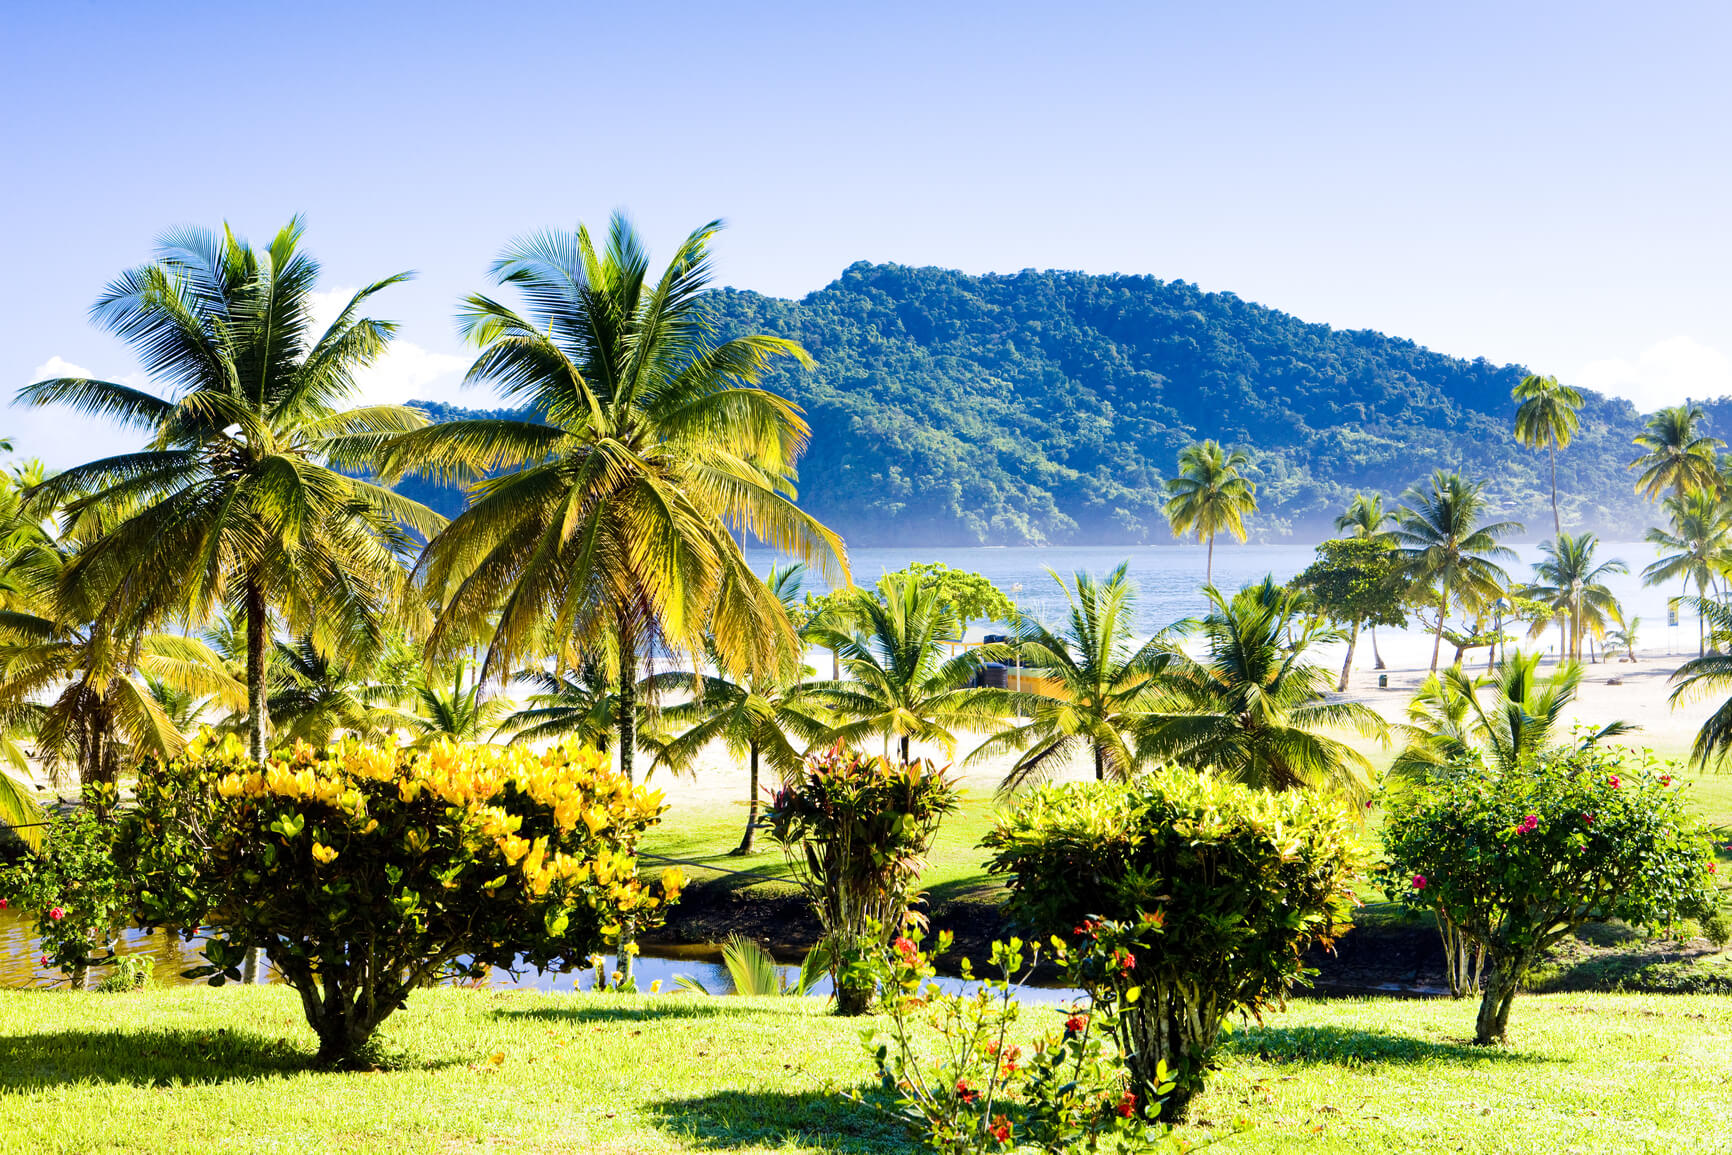 SUMMER: Chicago to Trinidad for only $251 roundtrip (Aug-Nov dates)